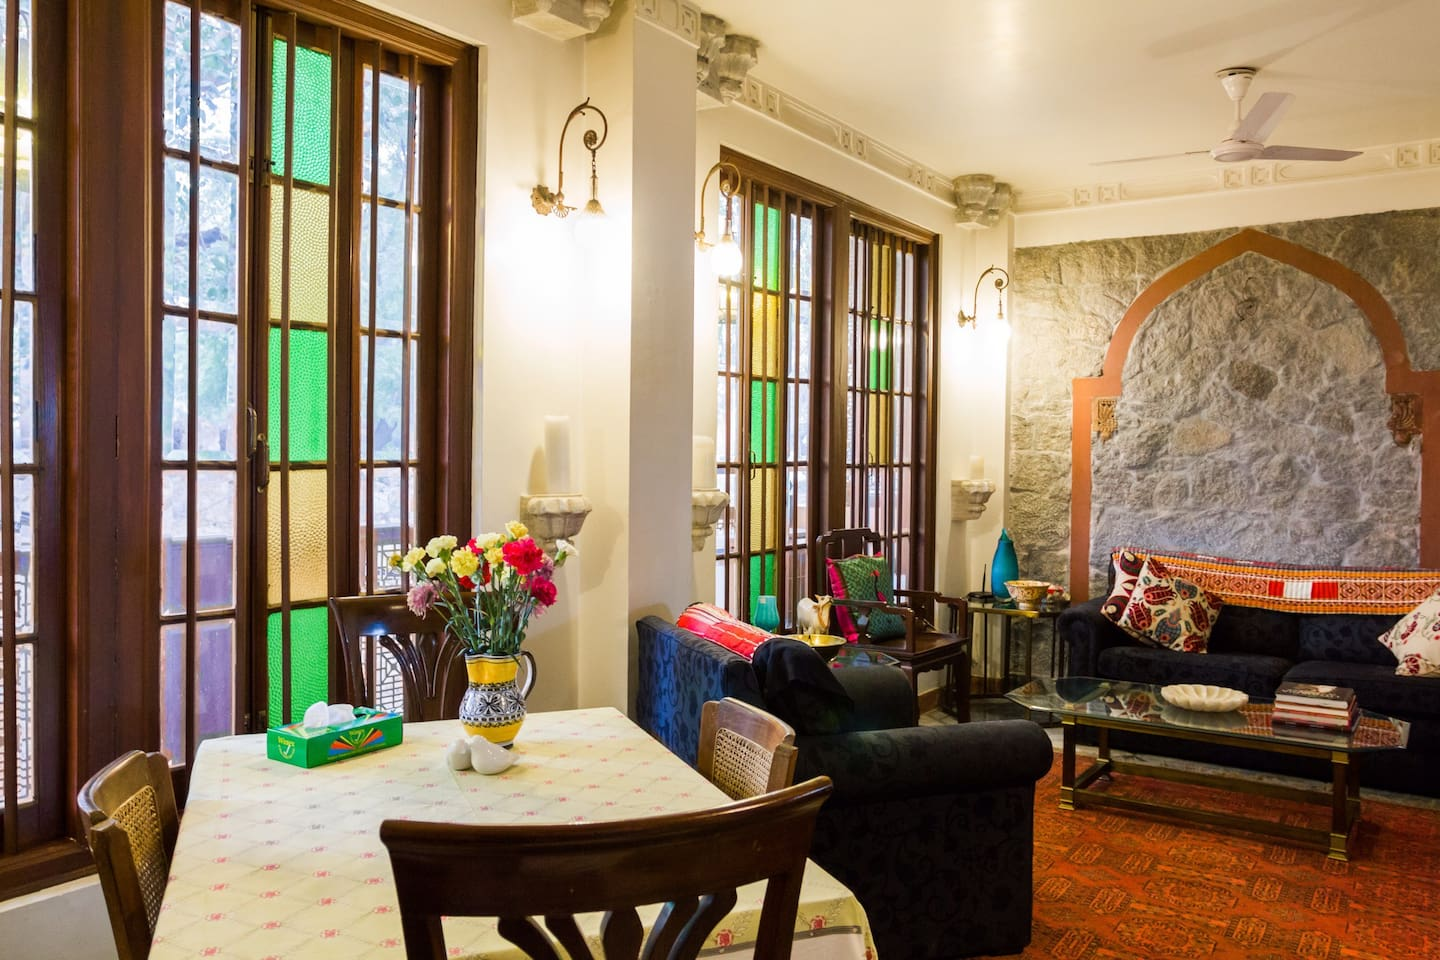 The living room with Italian marble, 19th century doors and furniture and decorated with the finest furnishings